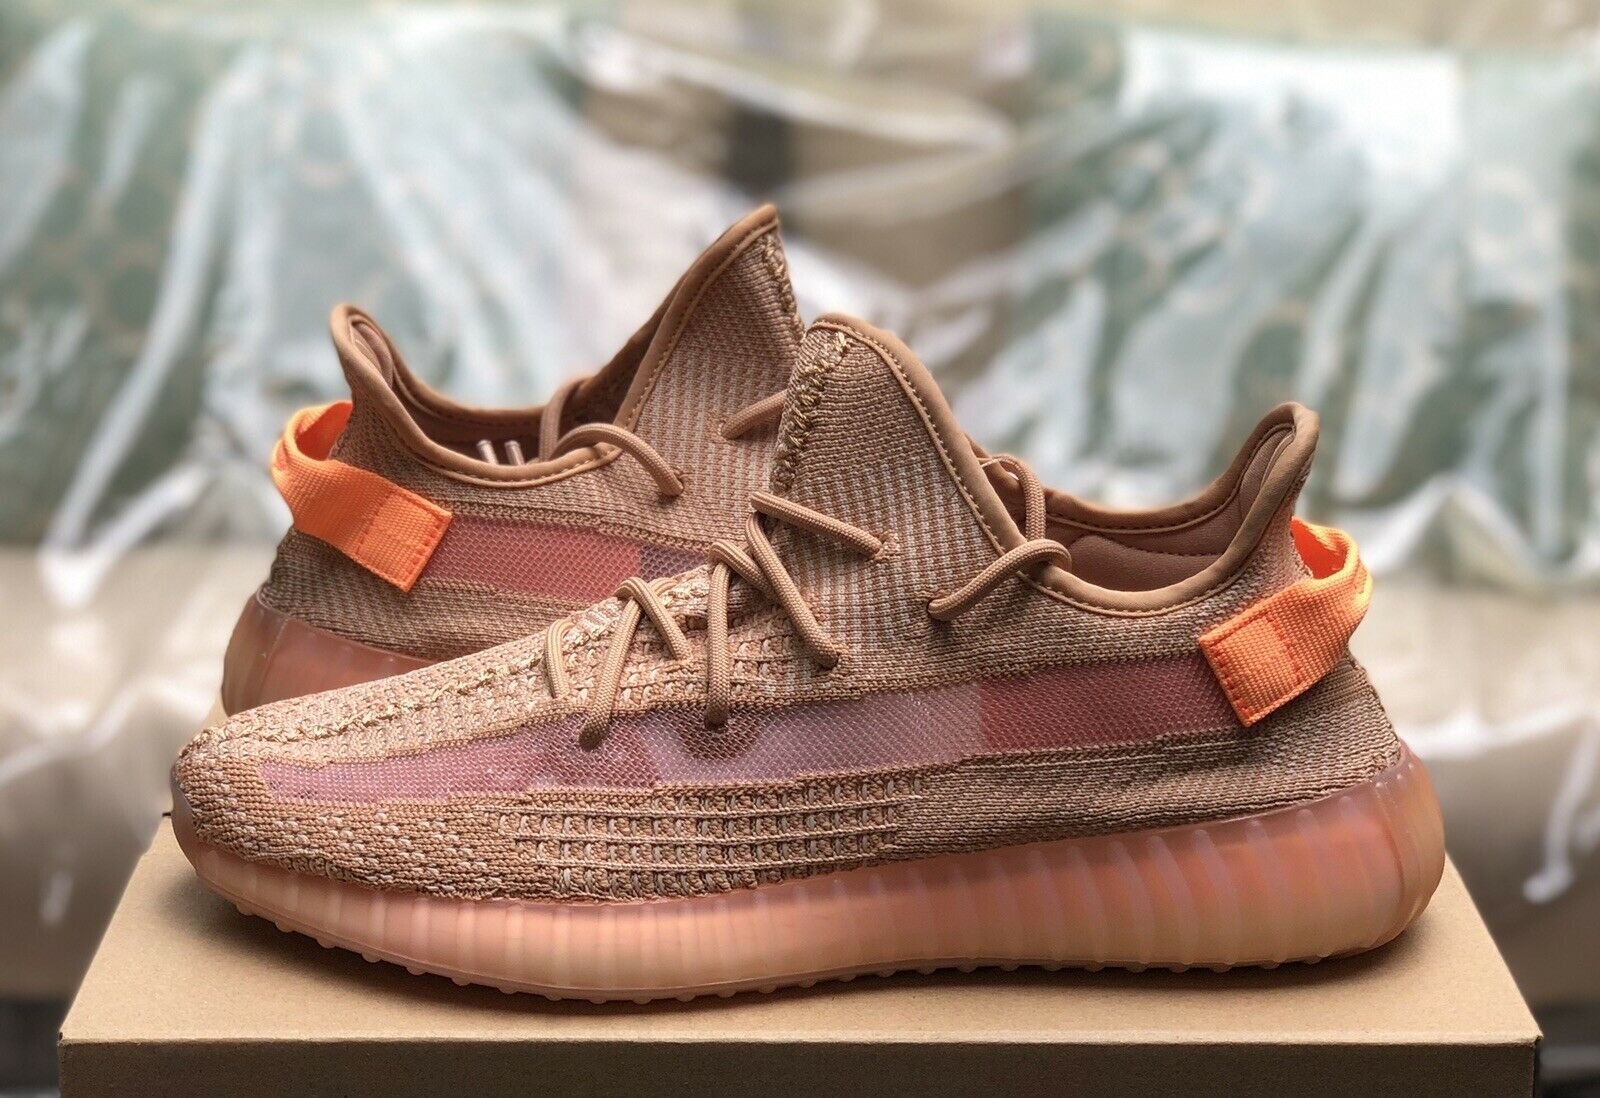 Adidas Yeezy Boost 350 V2 Clay Size 11 Ready To Ship